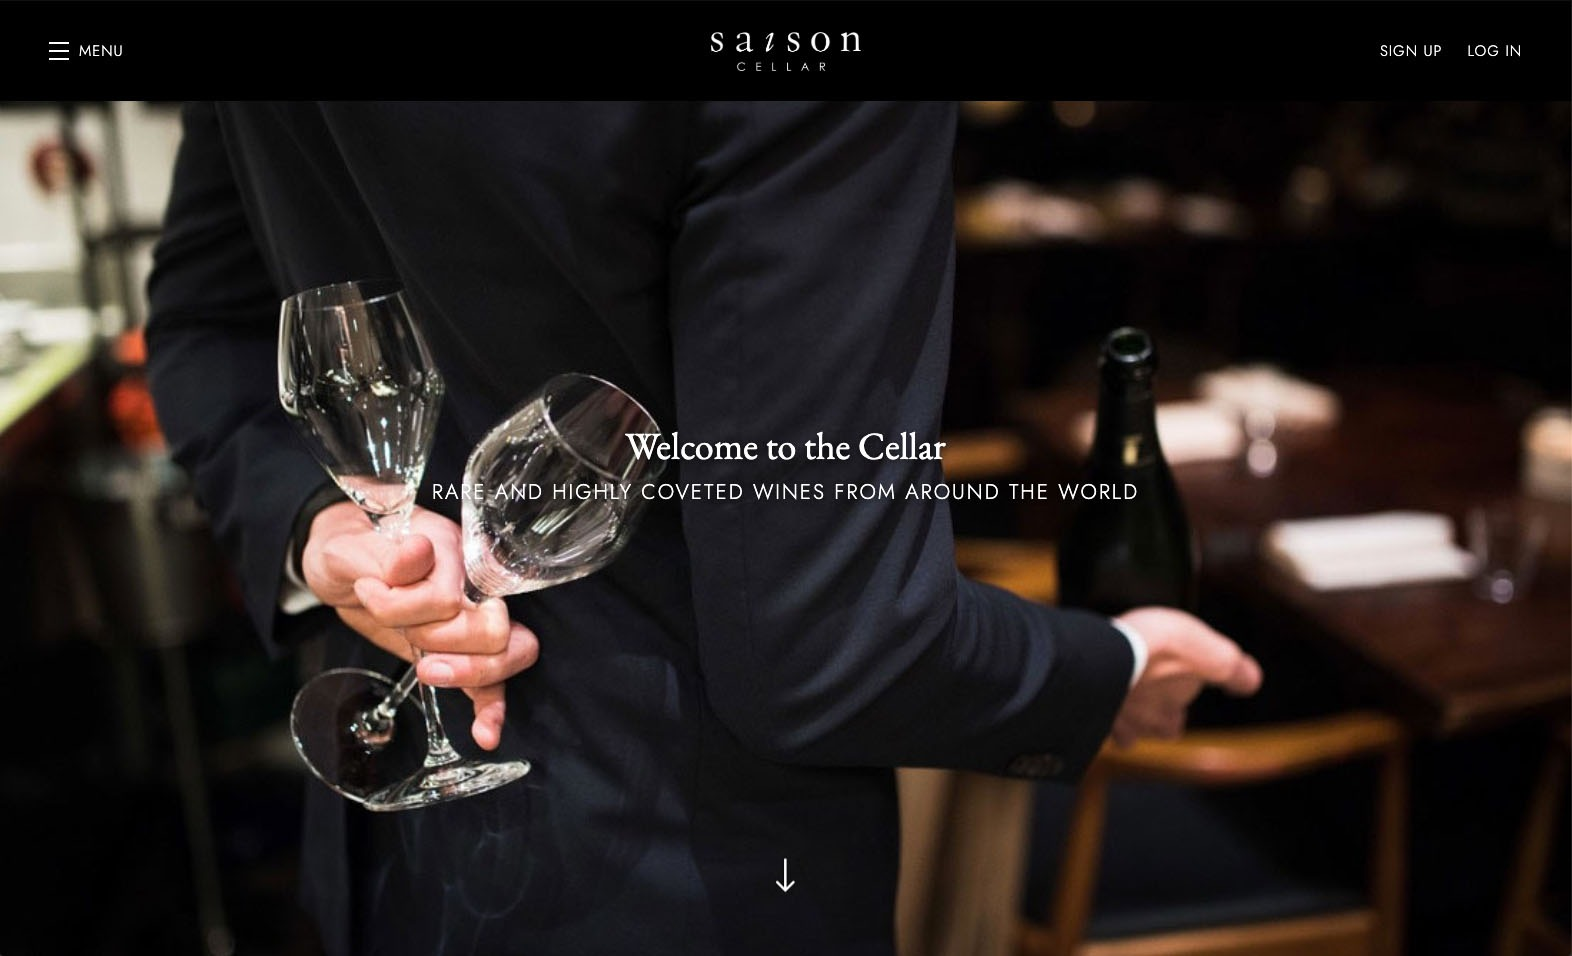 Saison Cellar Website